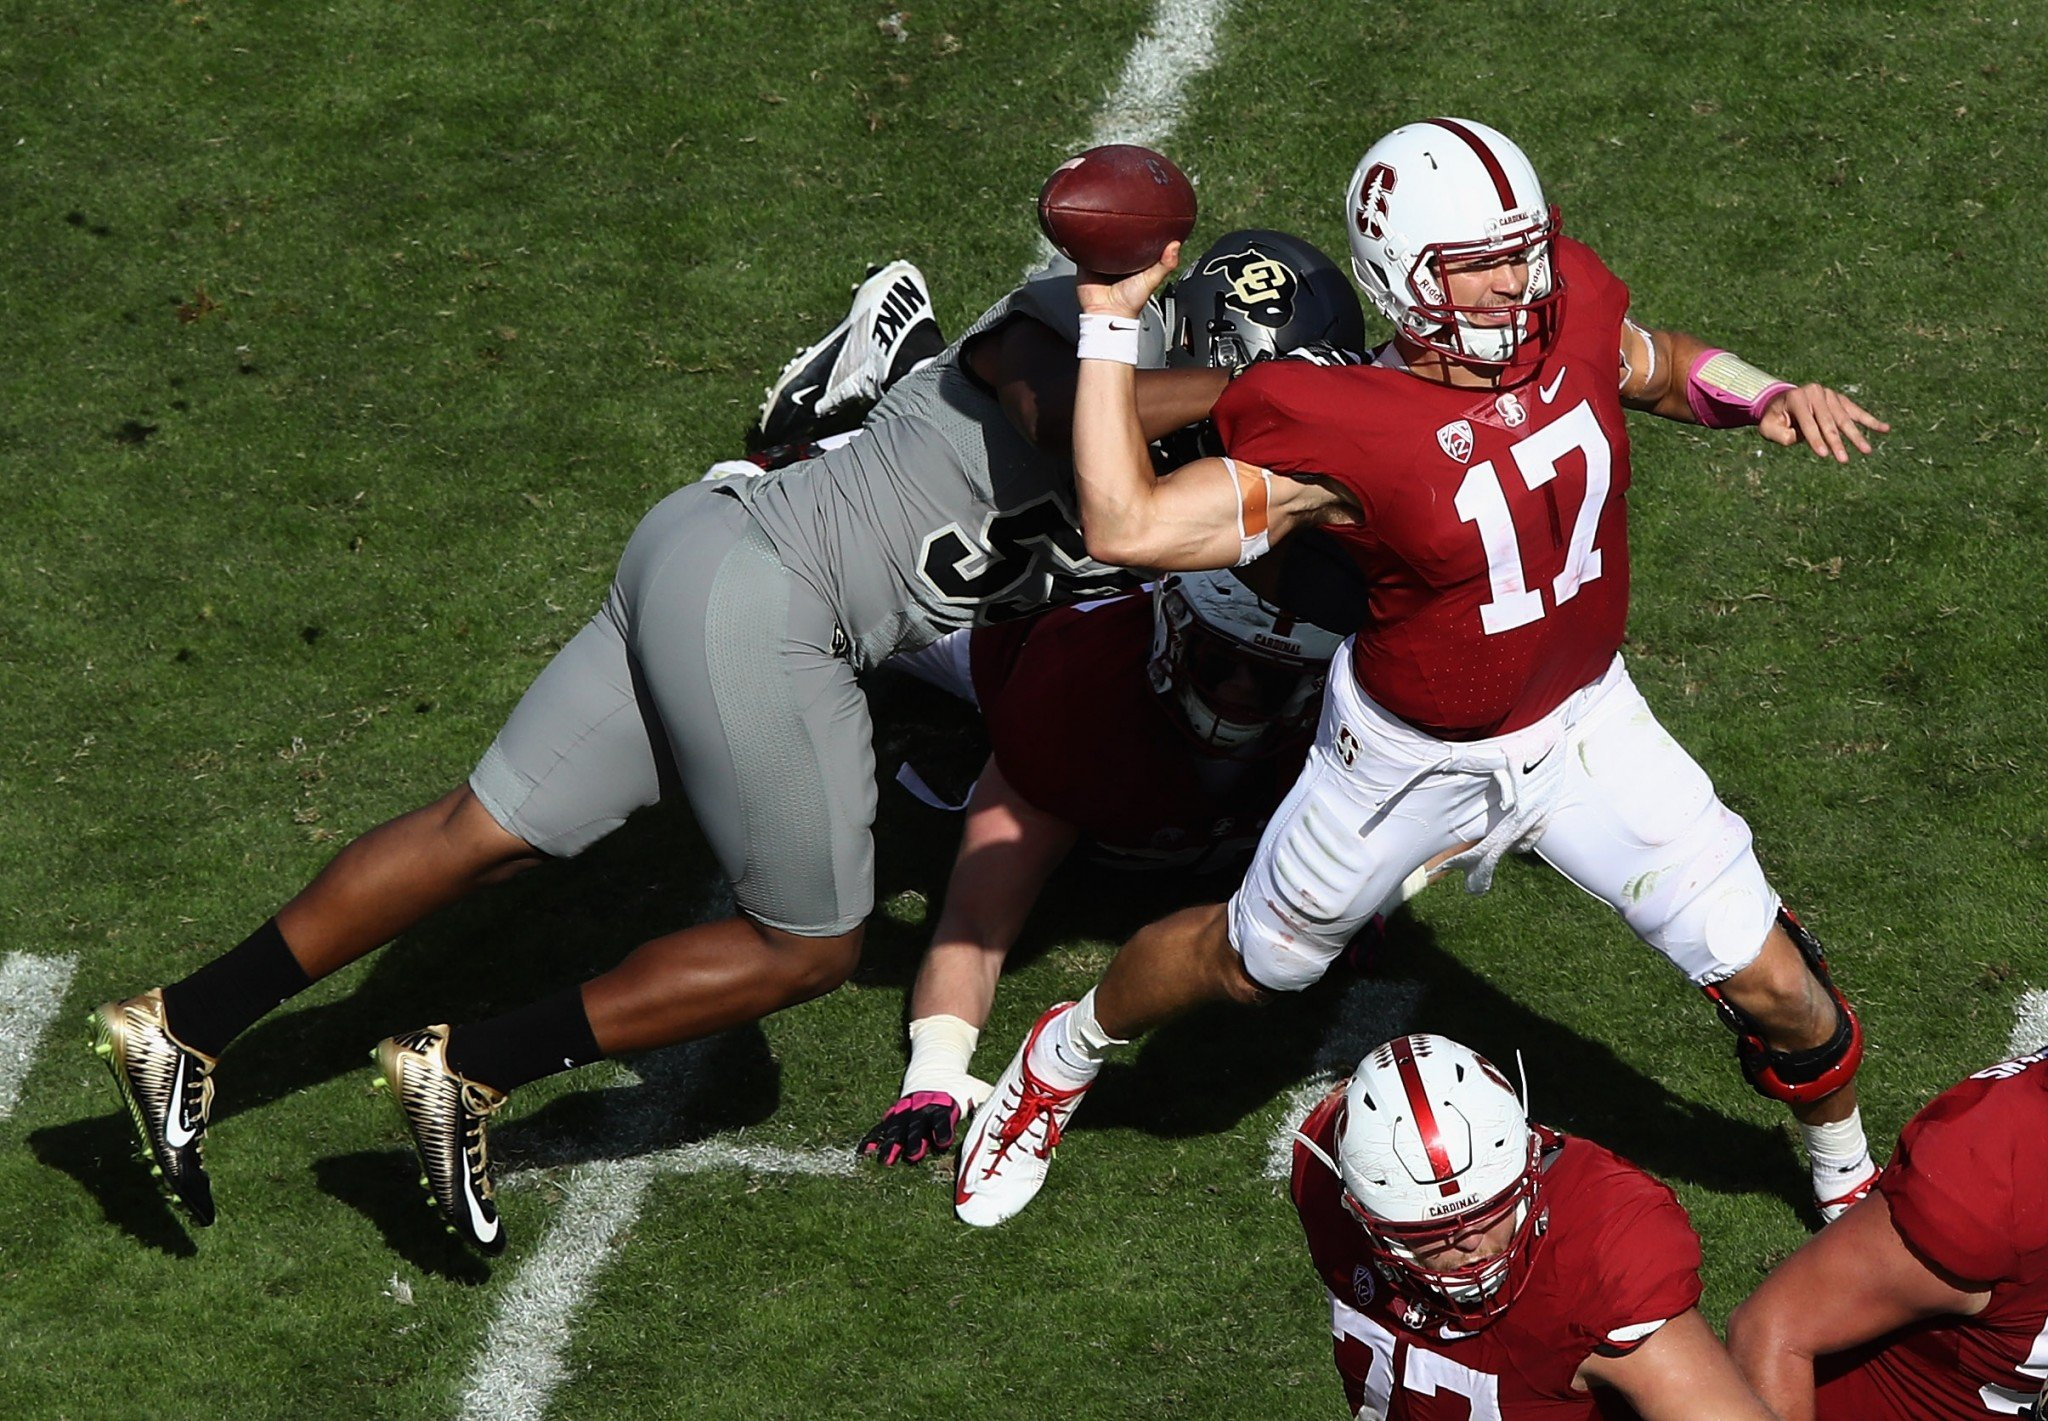 Ryan Burns opened 2016 as Stanford's starting quarterback. (Getty)